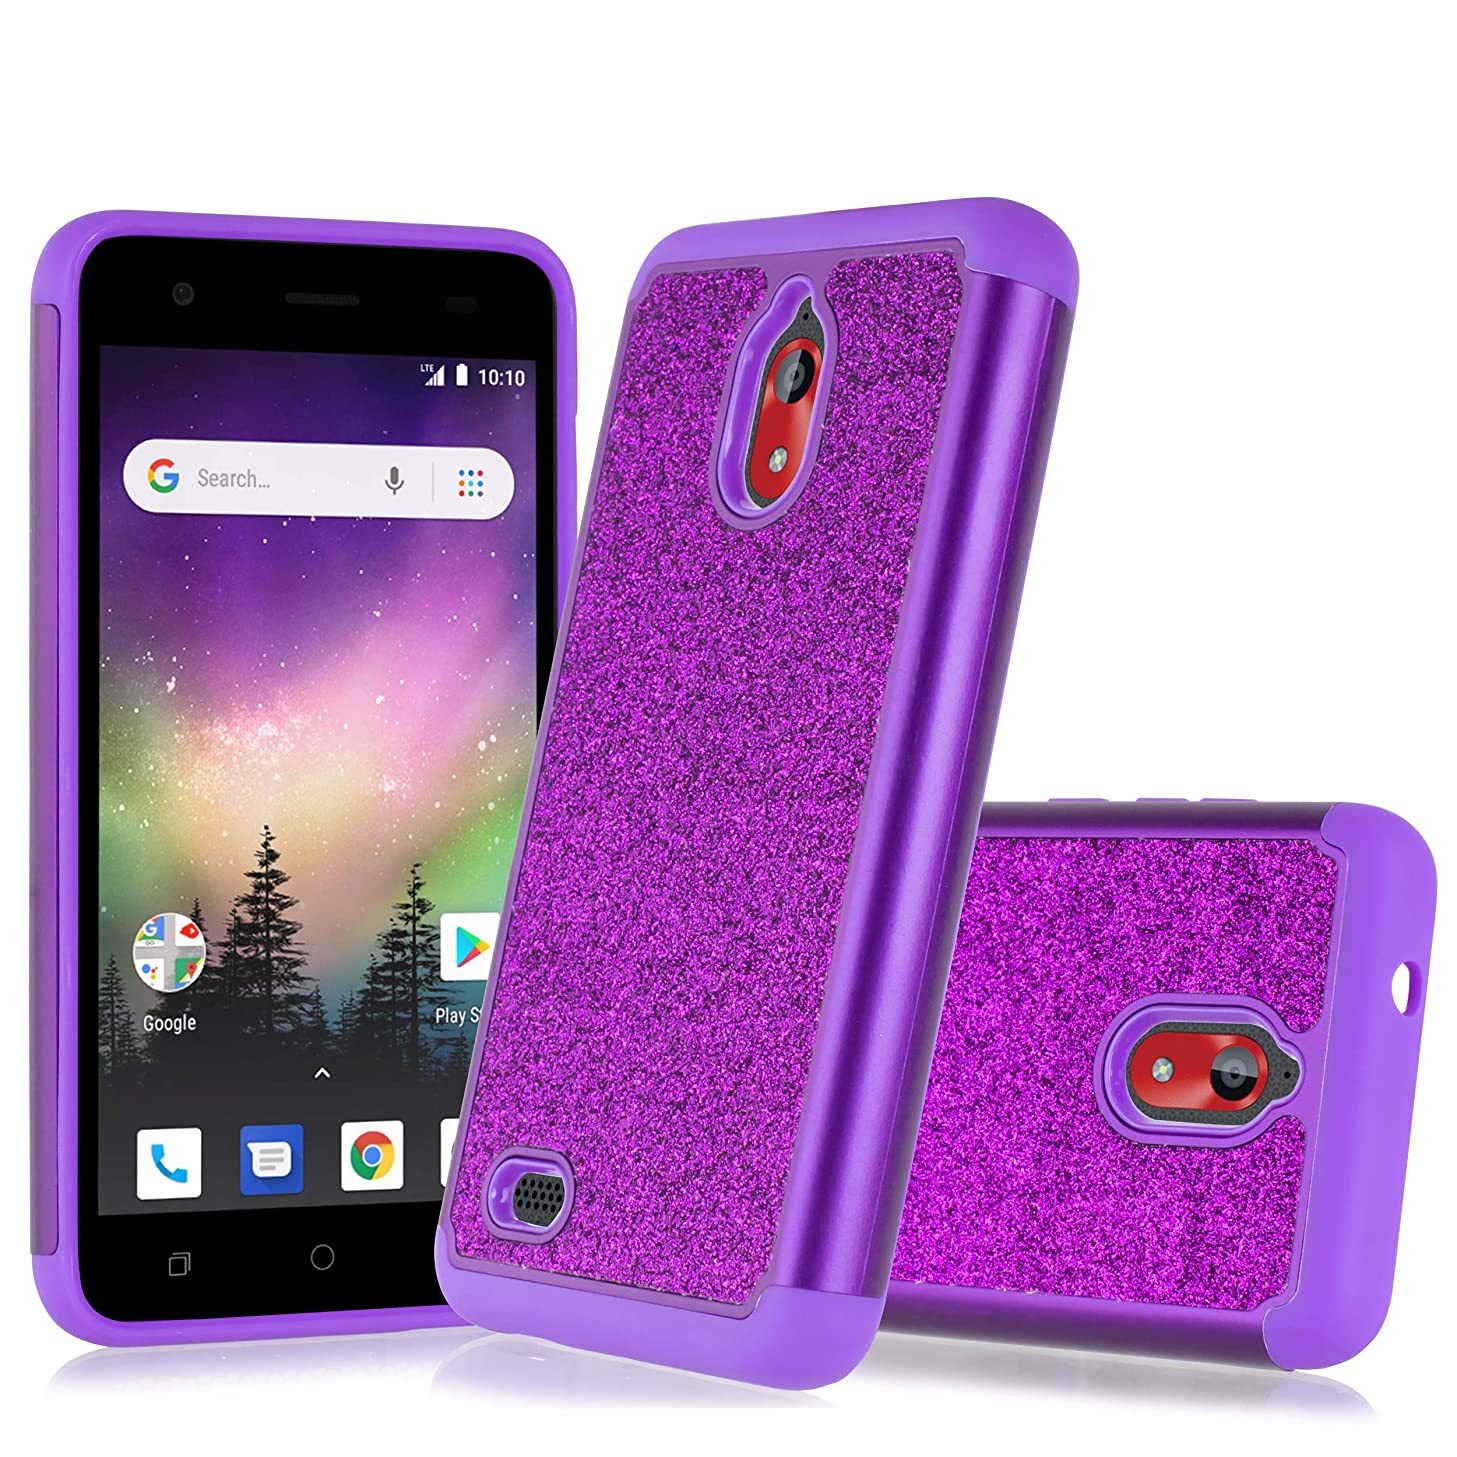 Compatible for Coolpad Illumina 3310A Case, 6goodeals, with HD Screen Protector for Girls Women, Glitter Bling Dual Layer Hybrid Shockproof Phone Case (Purple)